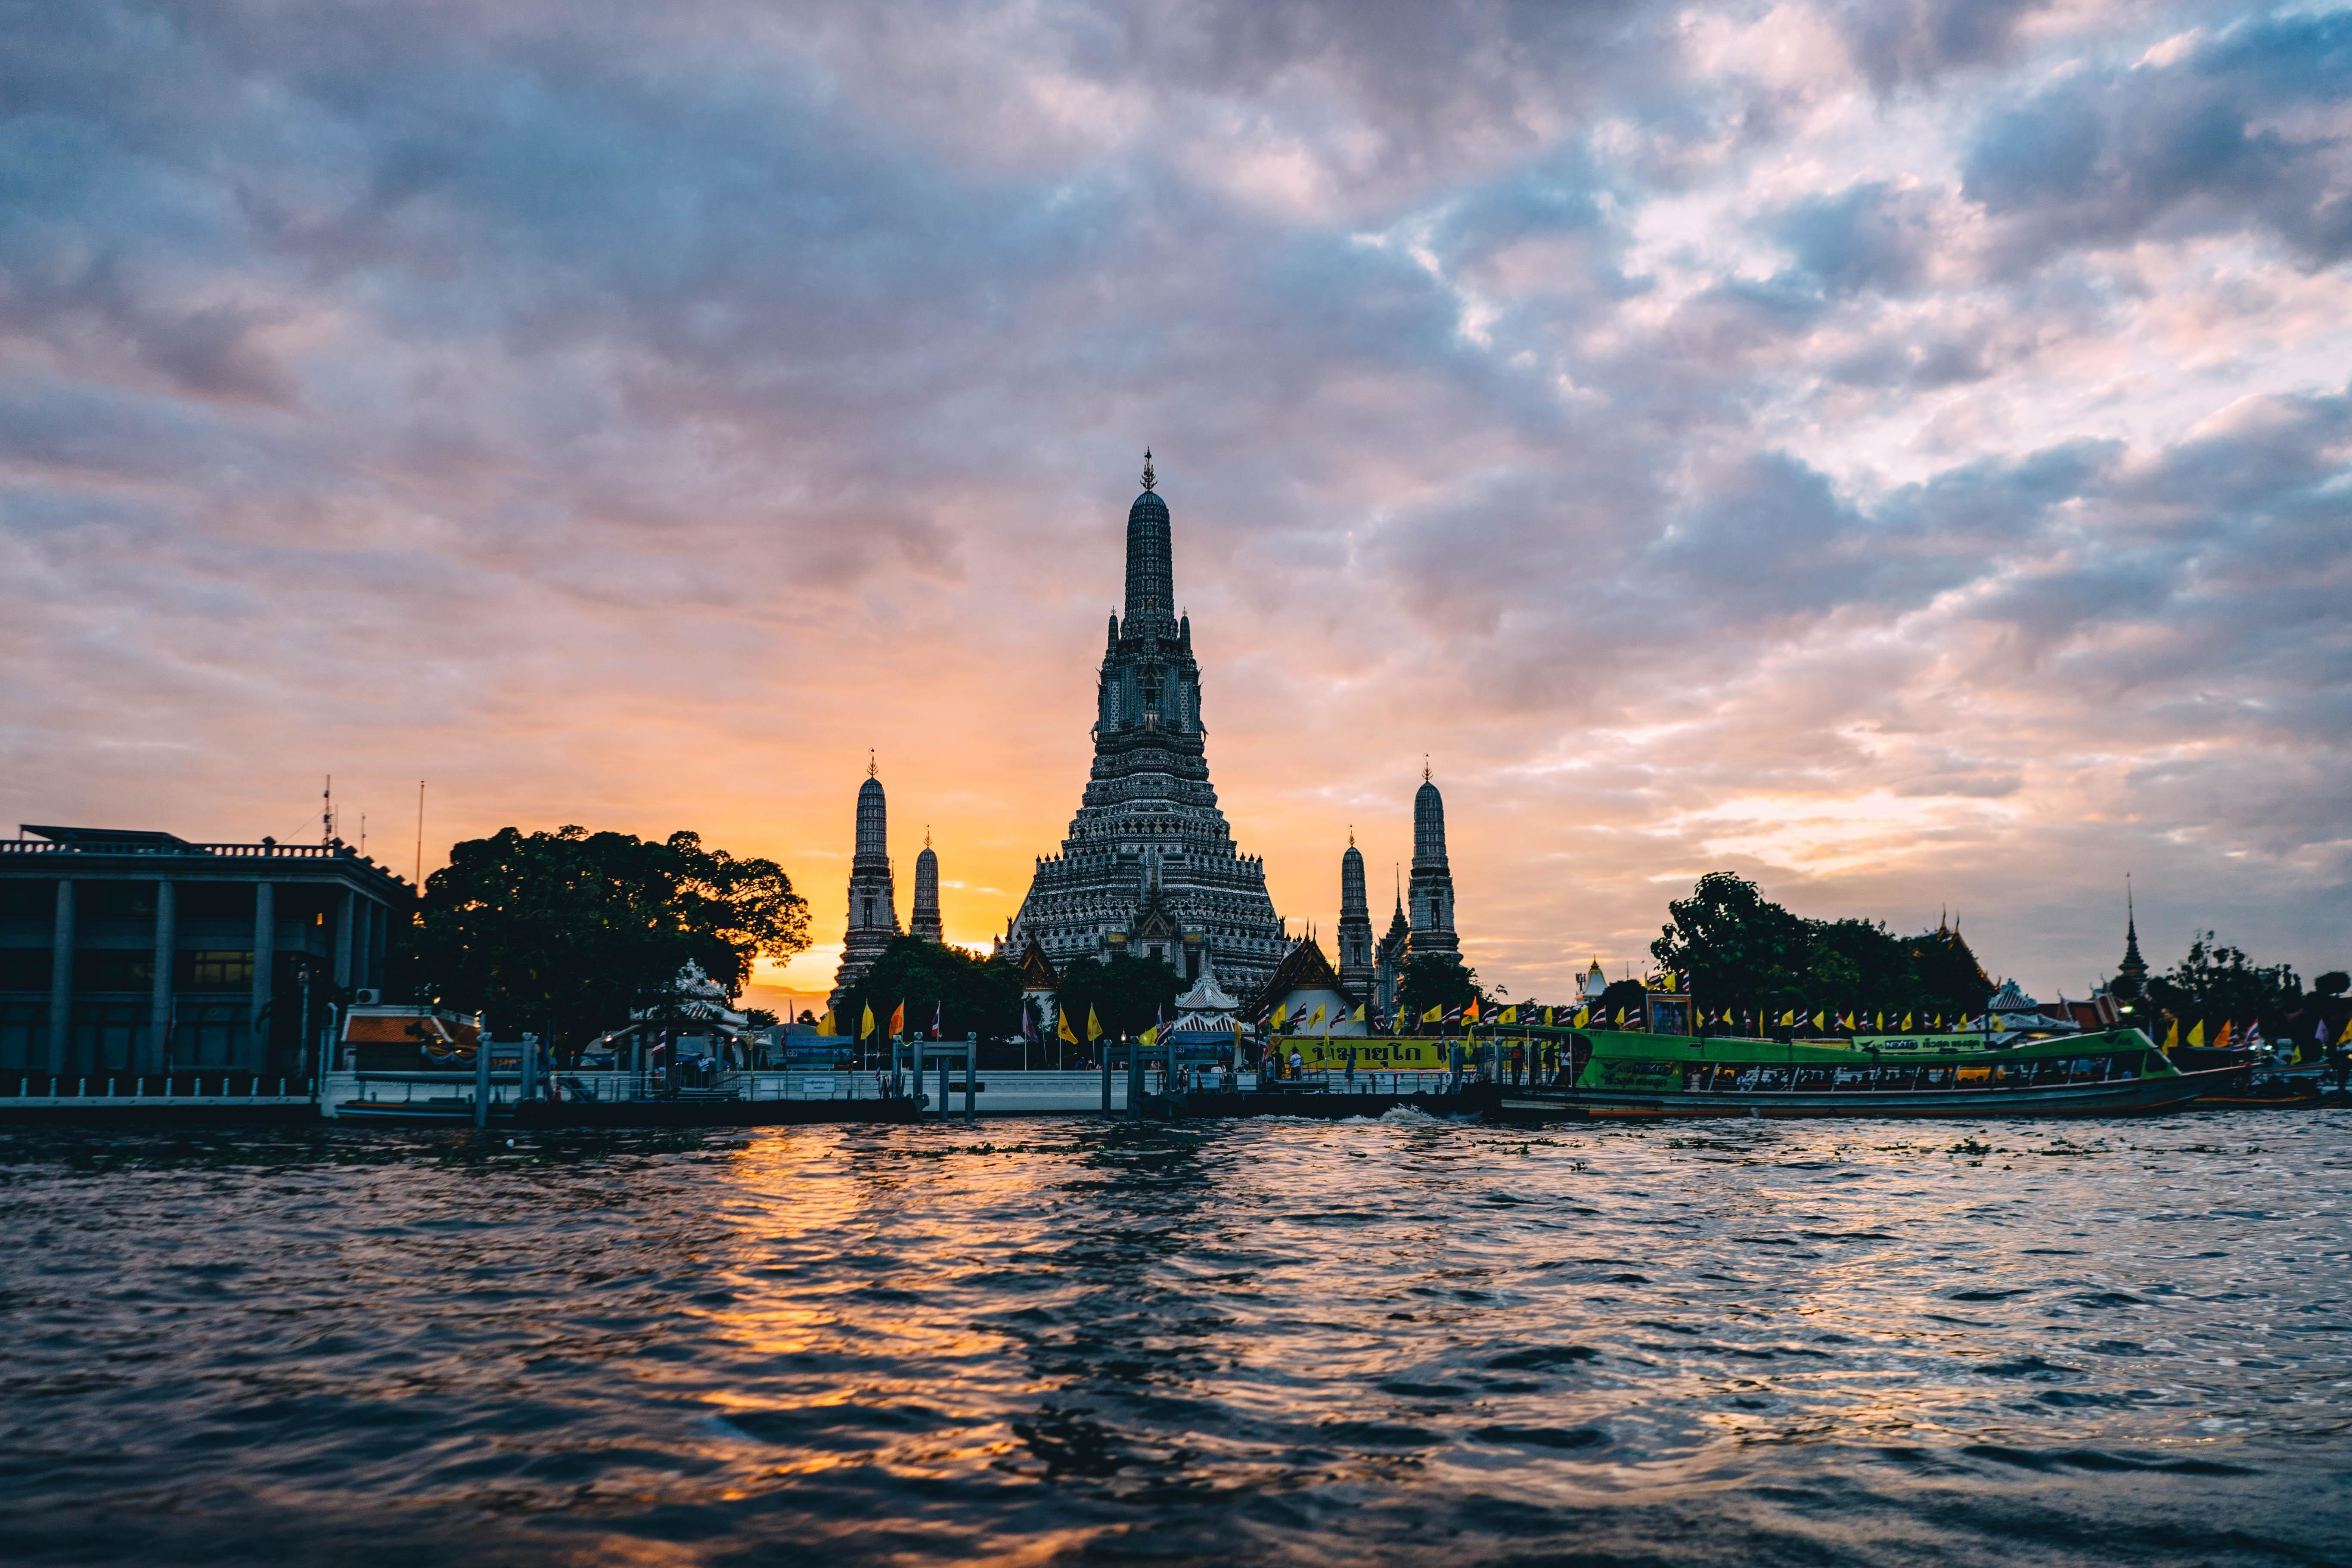 Plastic can lead to air and marine pollution - interconnected issues tackled by young leaders in Bangkok recently looking to build a circular economy.